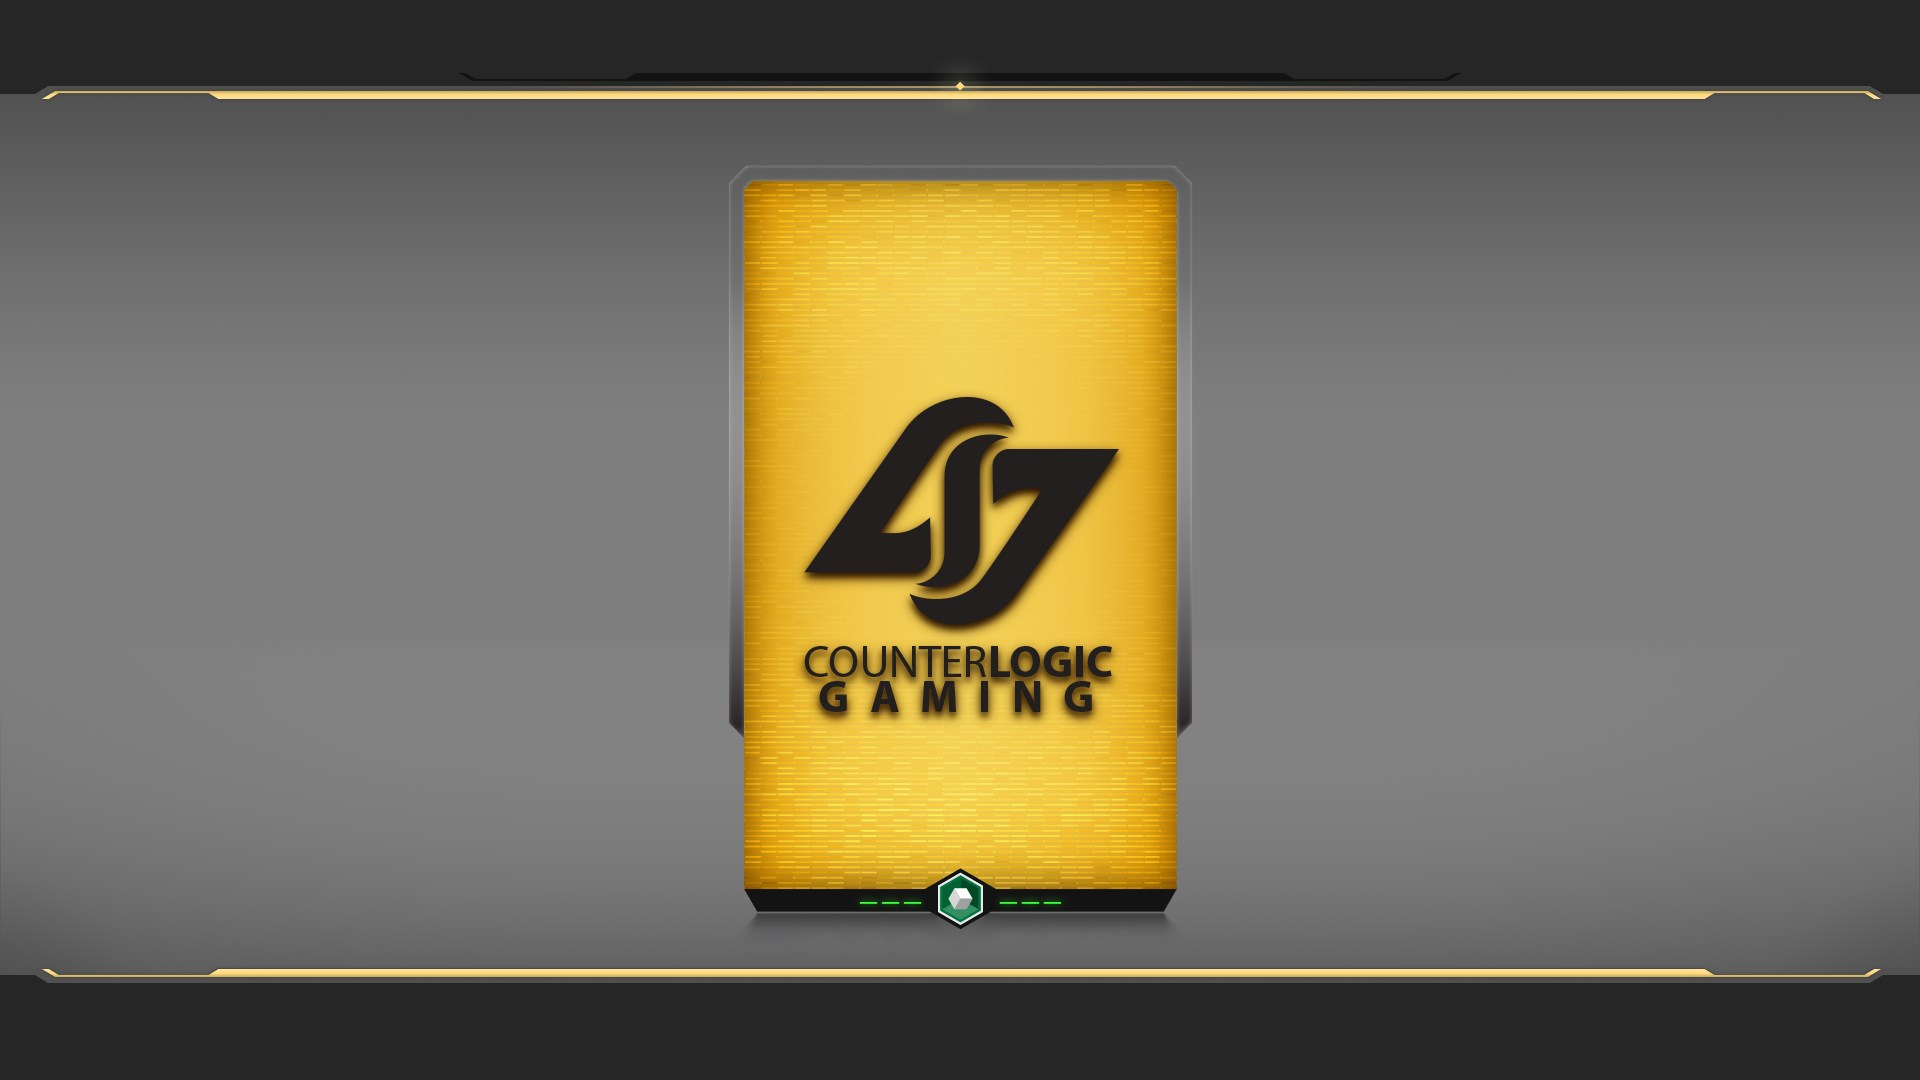 Halo 5: Guardians – HCS Counter Logic Gaming (CLG) REQ Pack